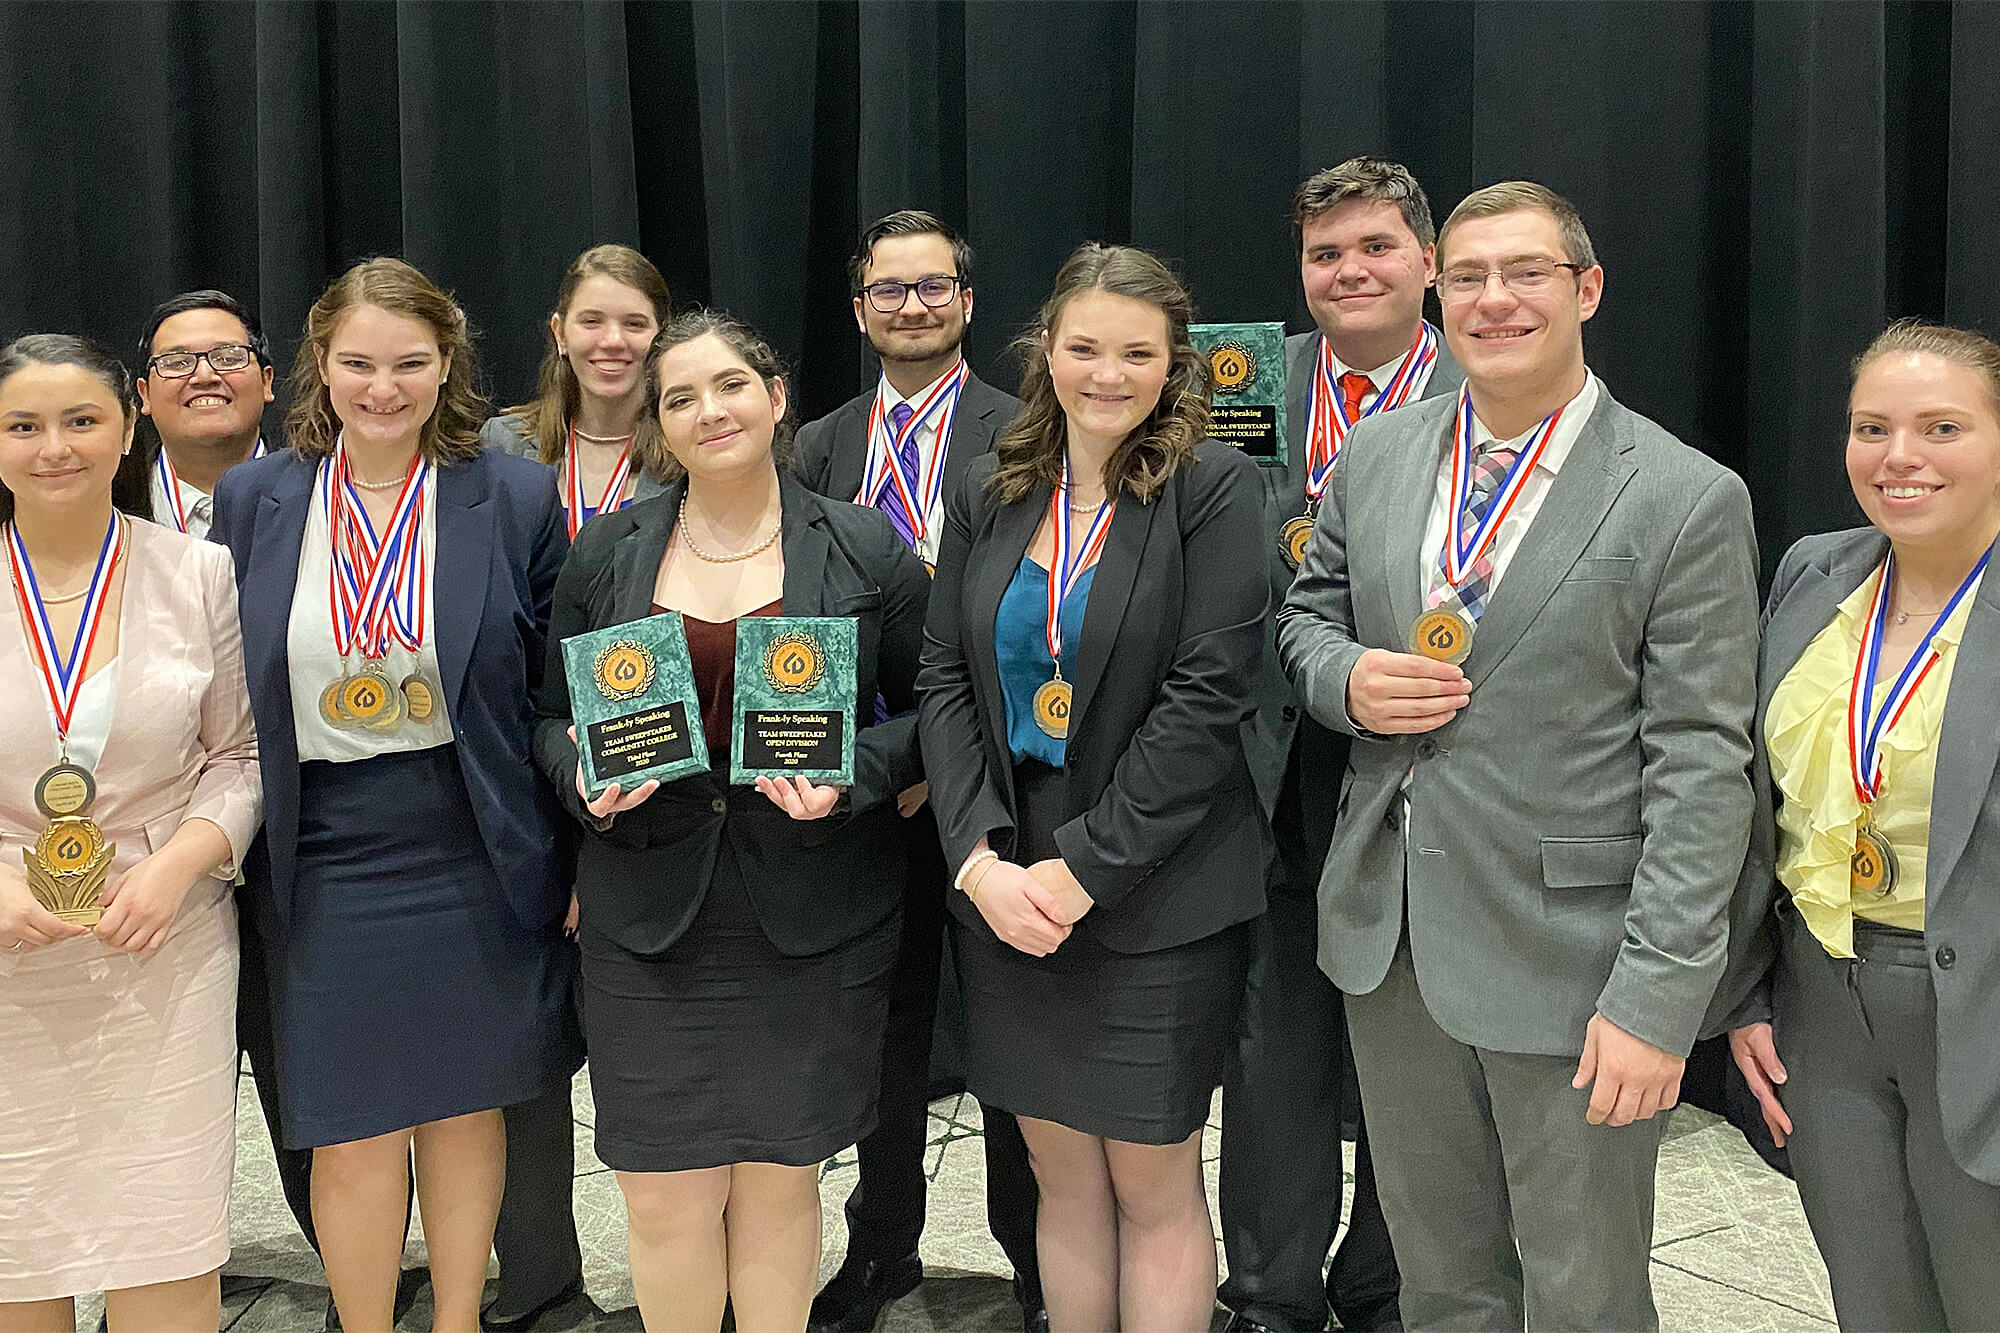 Photograph of debate teams with awards from DuPage College debate tournament.